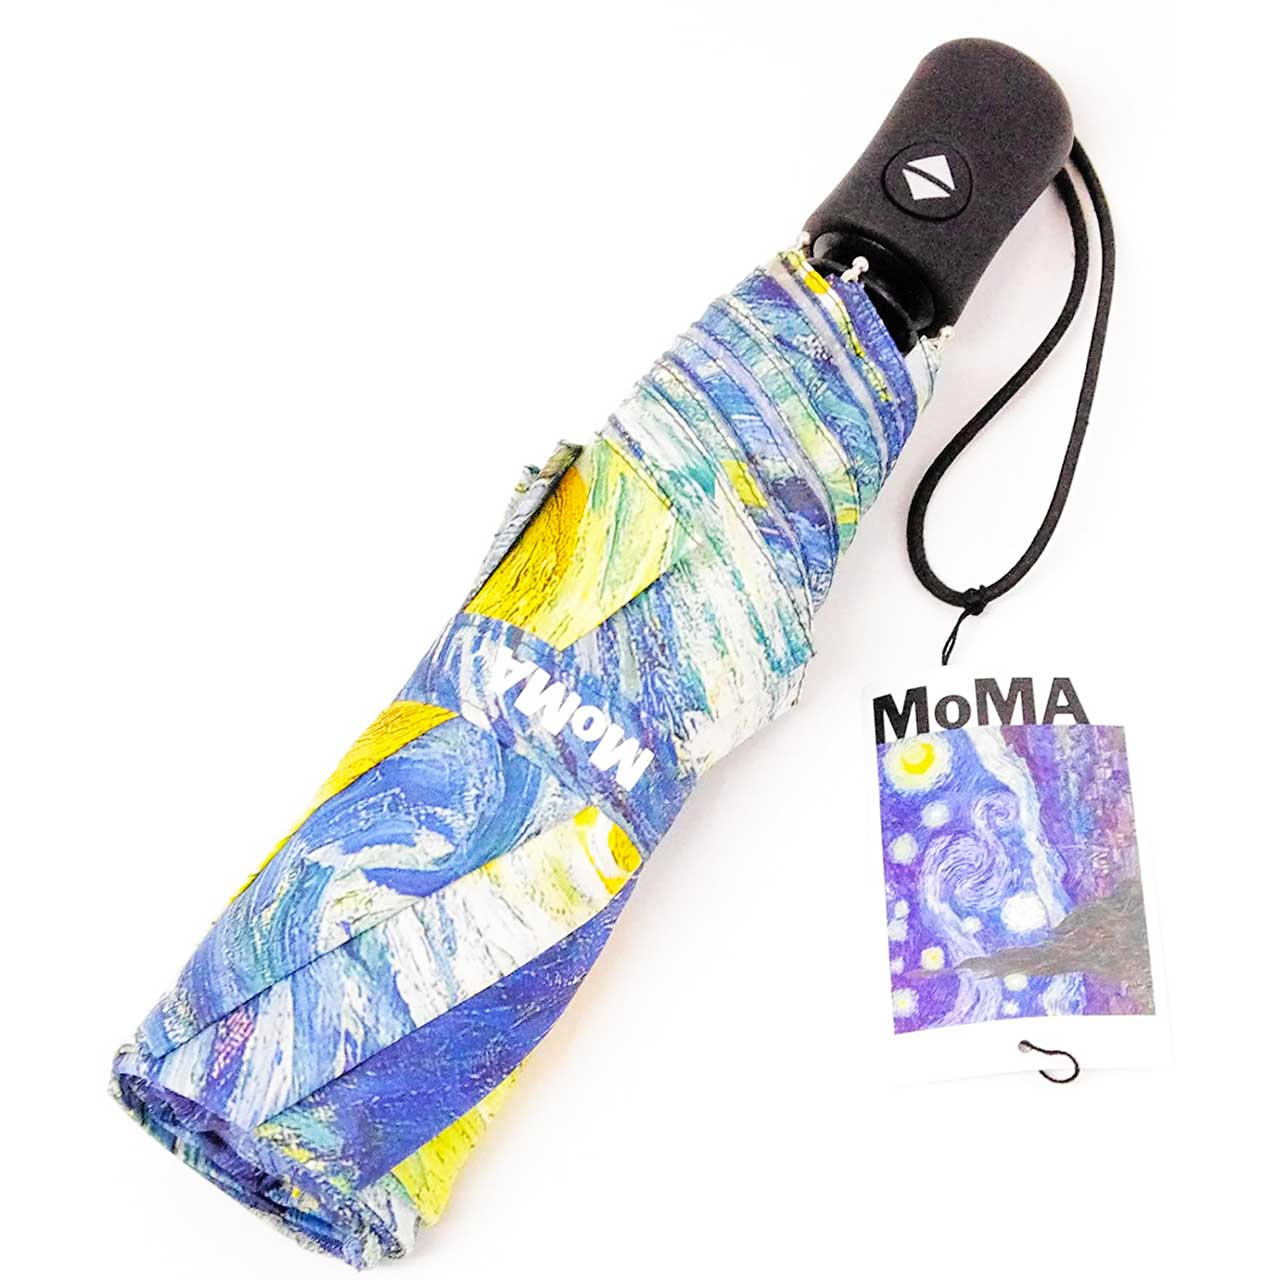 MoMa Starry Night Umbrella Collapsible   the design gift shop